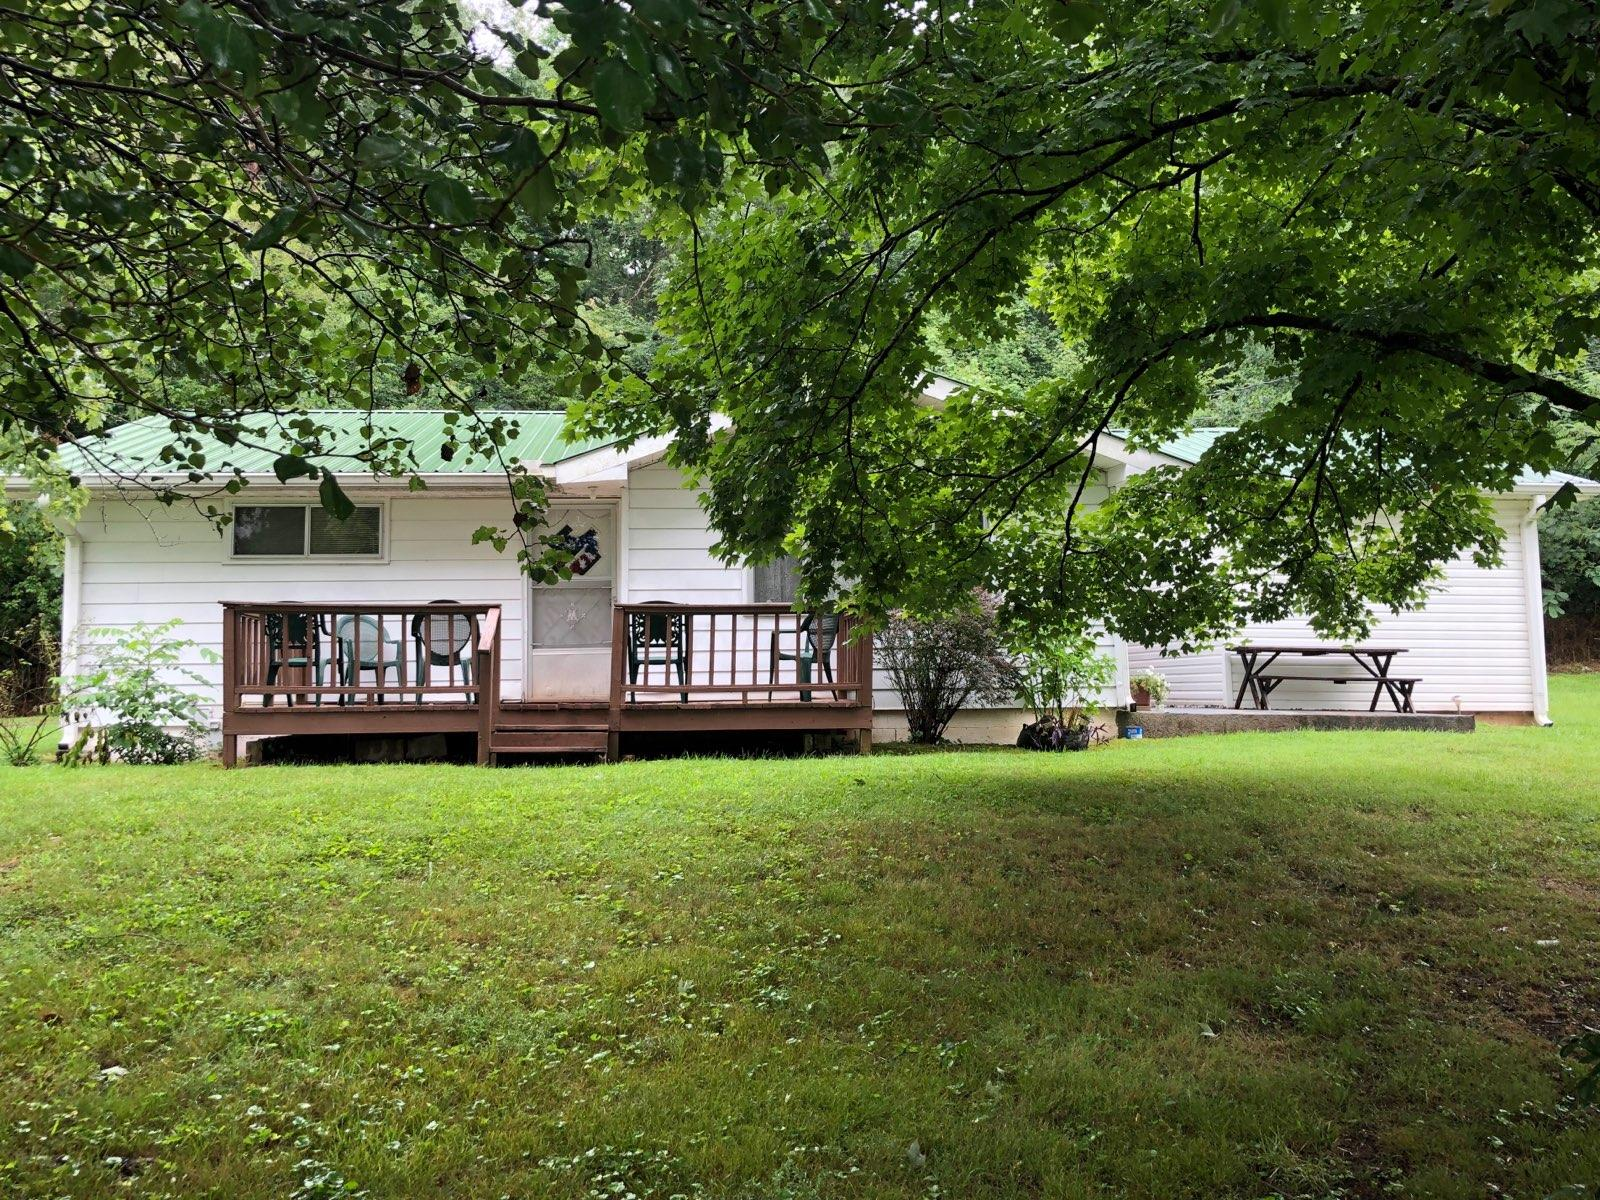 1494 Main St, Dunlap, TN 37327